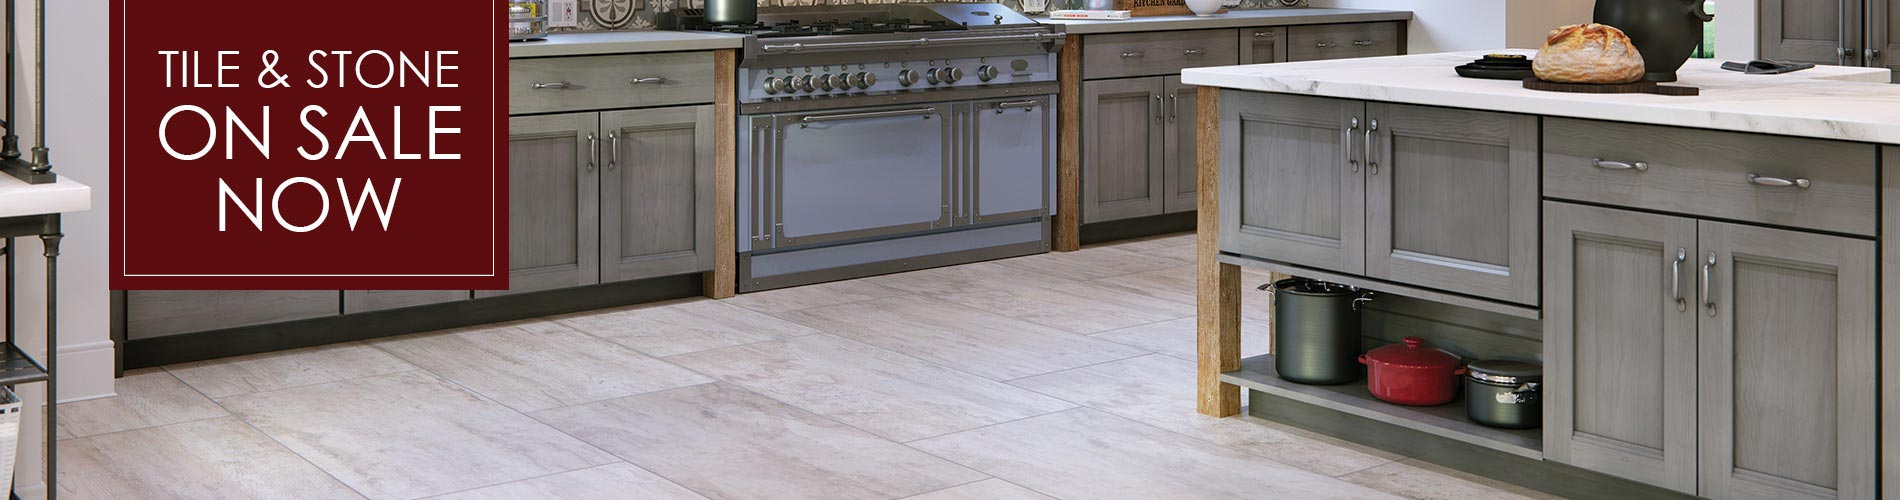 Tile and Stone on Sale this month only!